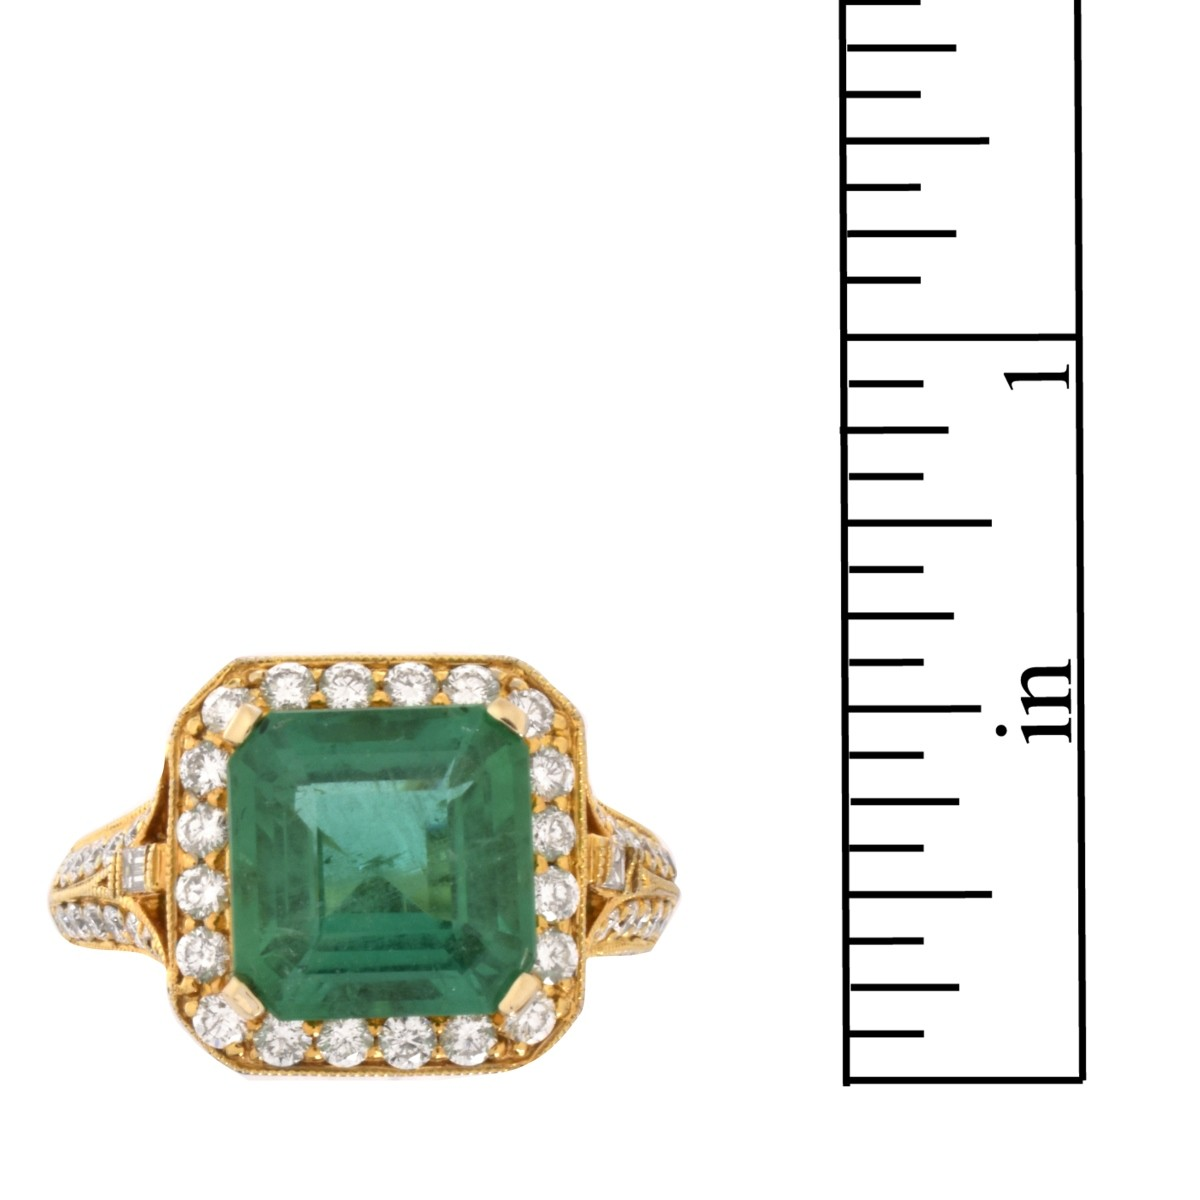 Emerald, Diamond and 18K Ring